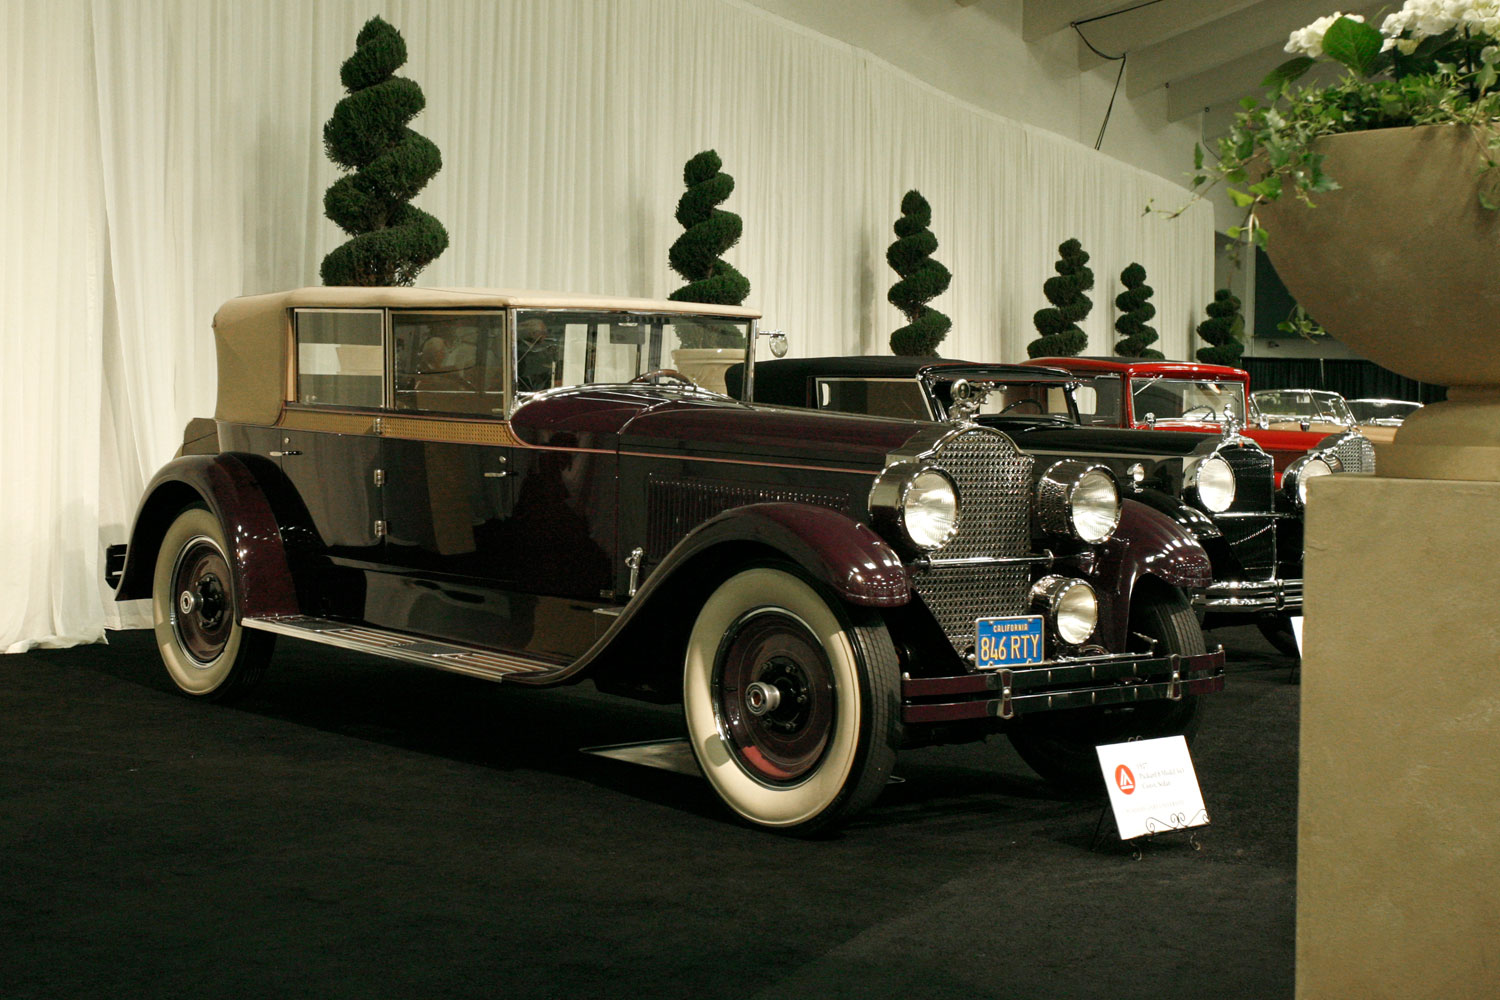 1927 Packard 8 Model 343 Convertible Sedan